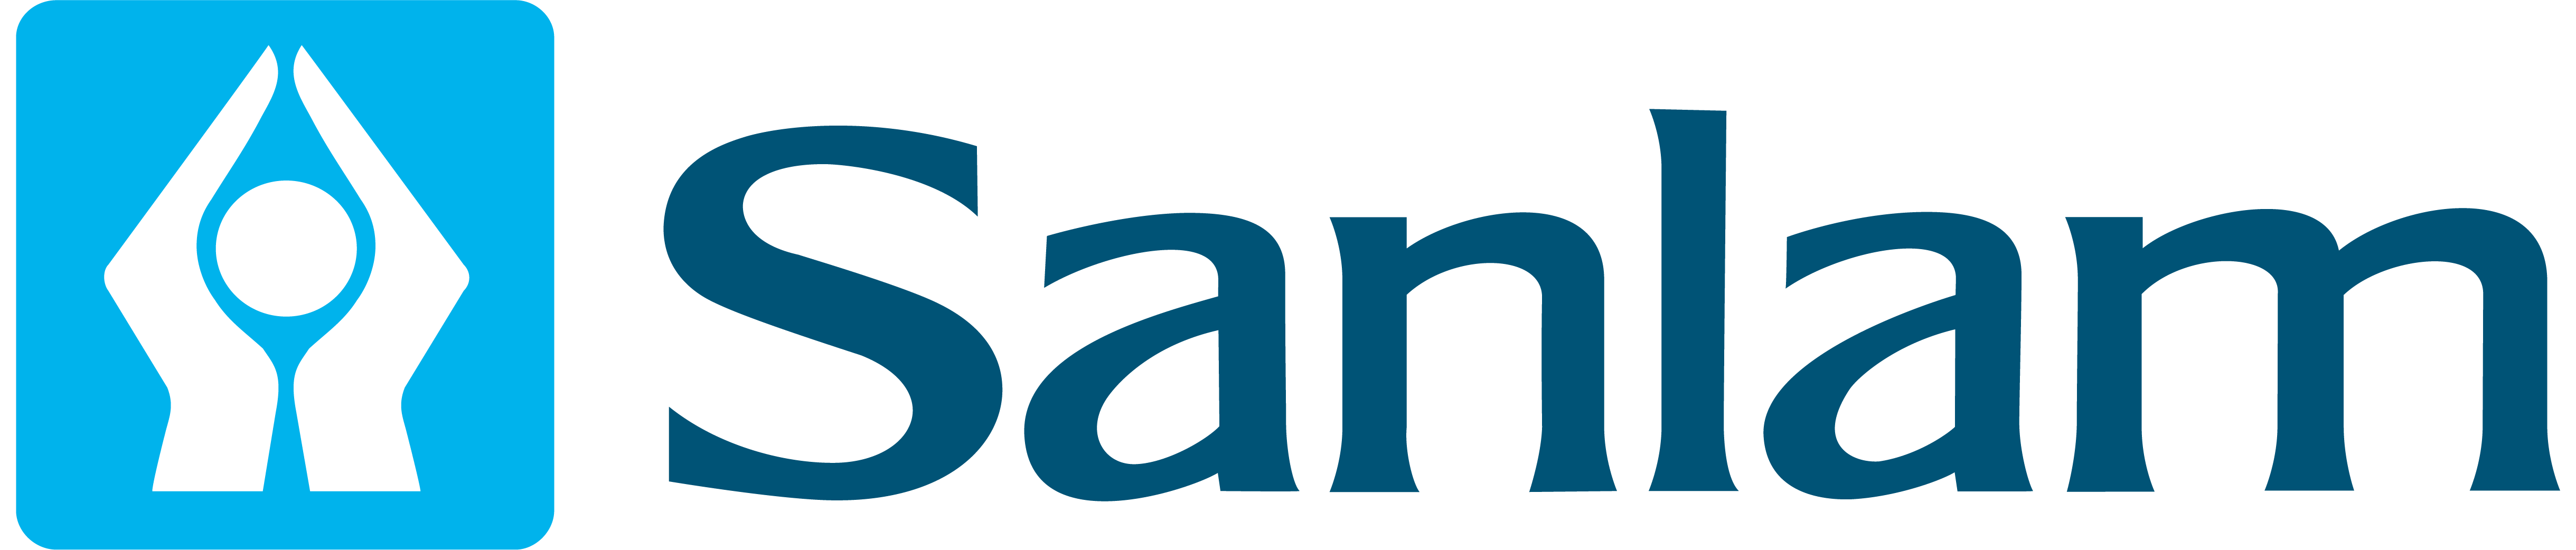 Sanlam logo clipart svg black and white PaceCo svg black and white